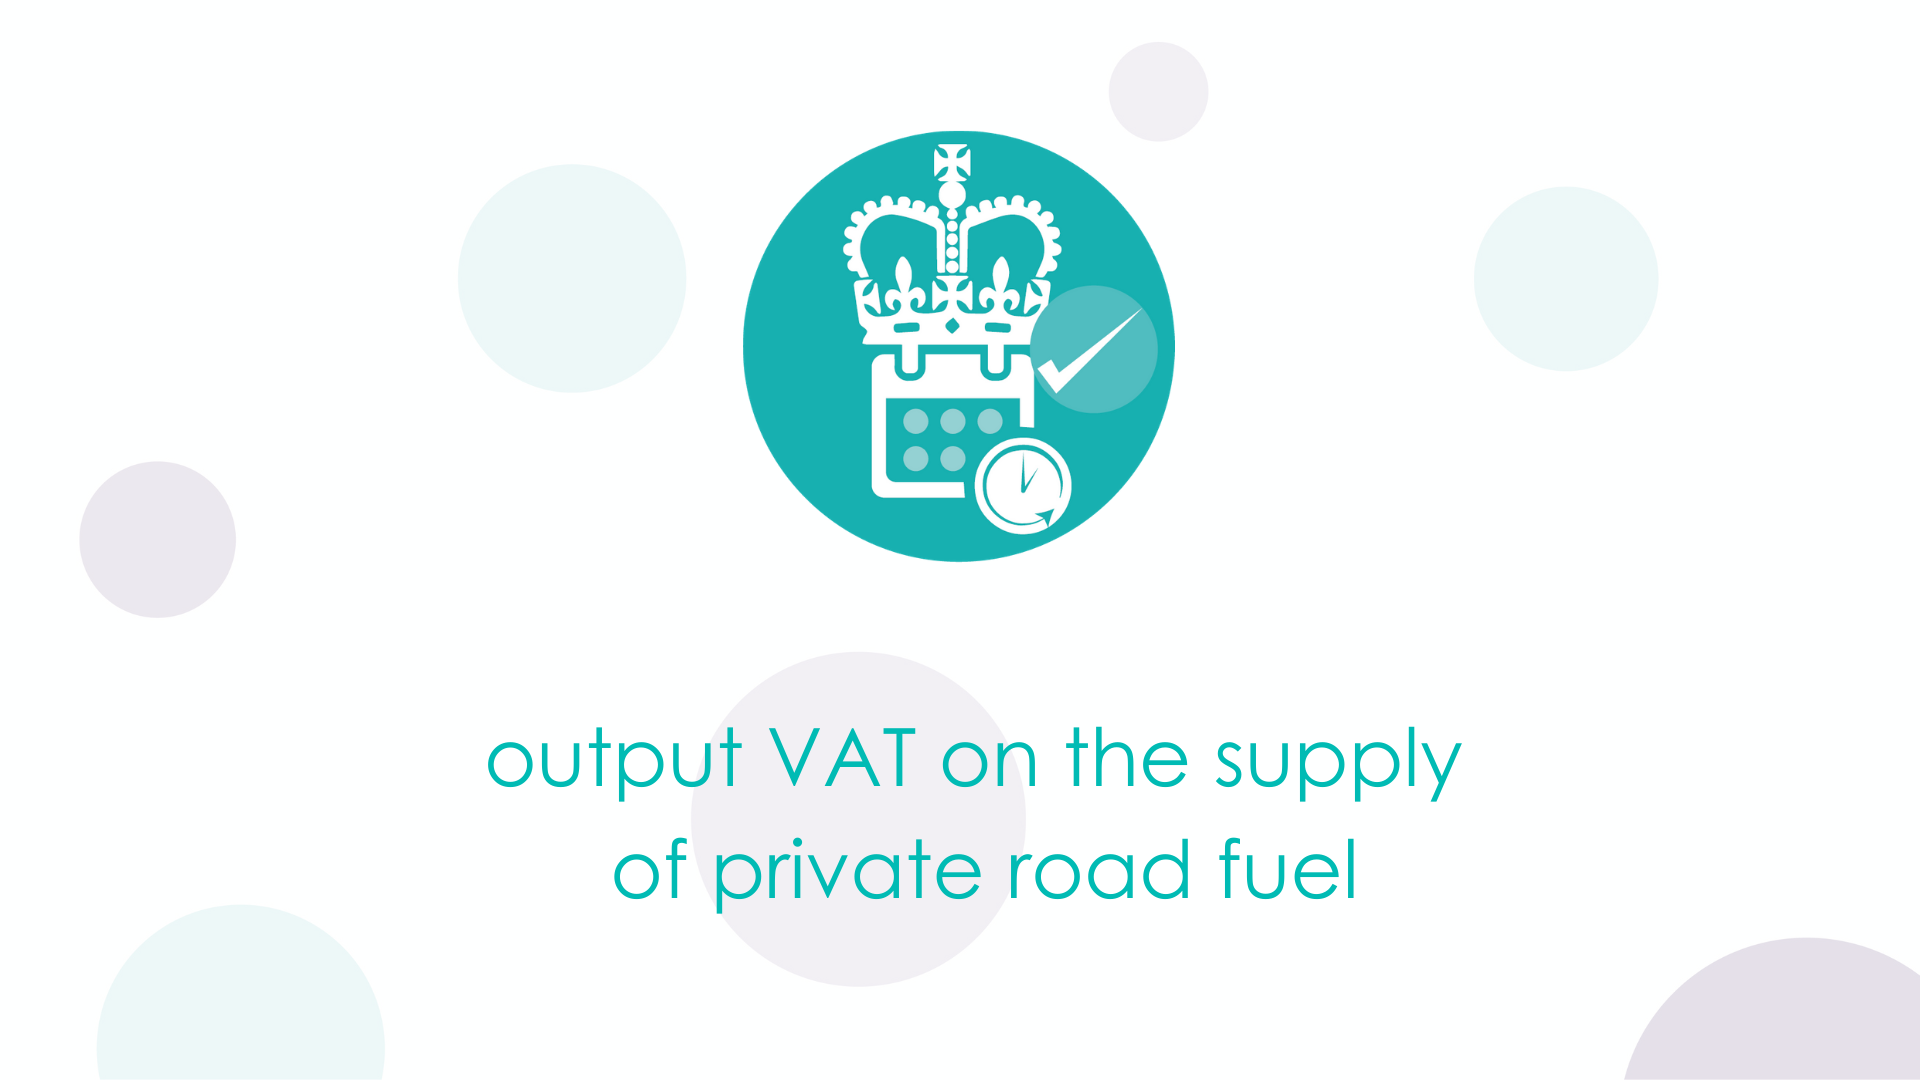 Output VAT on the supply of private road fuel